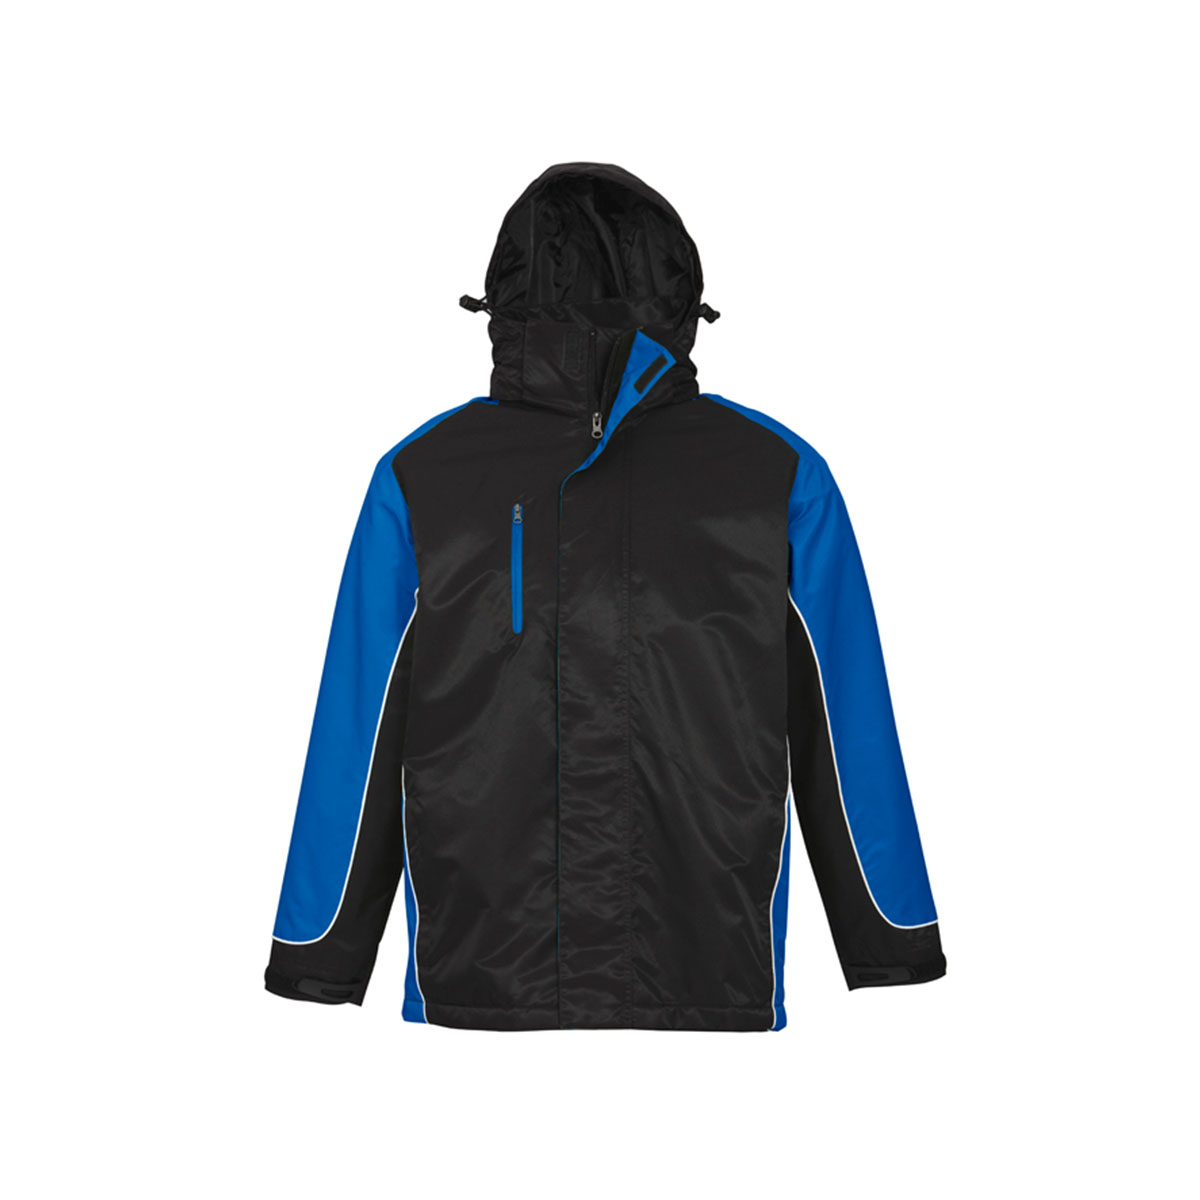 Unisex Nitro Jacket-Black / Royal / White